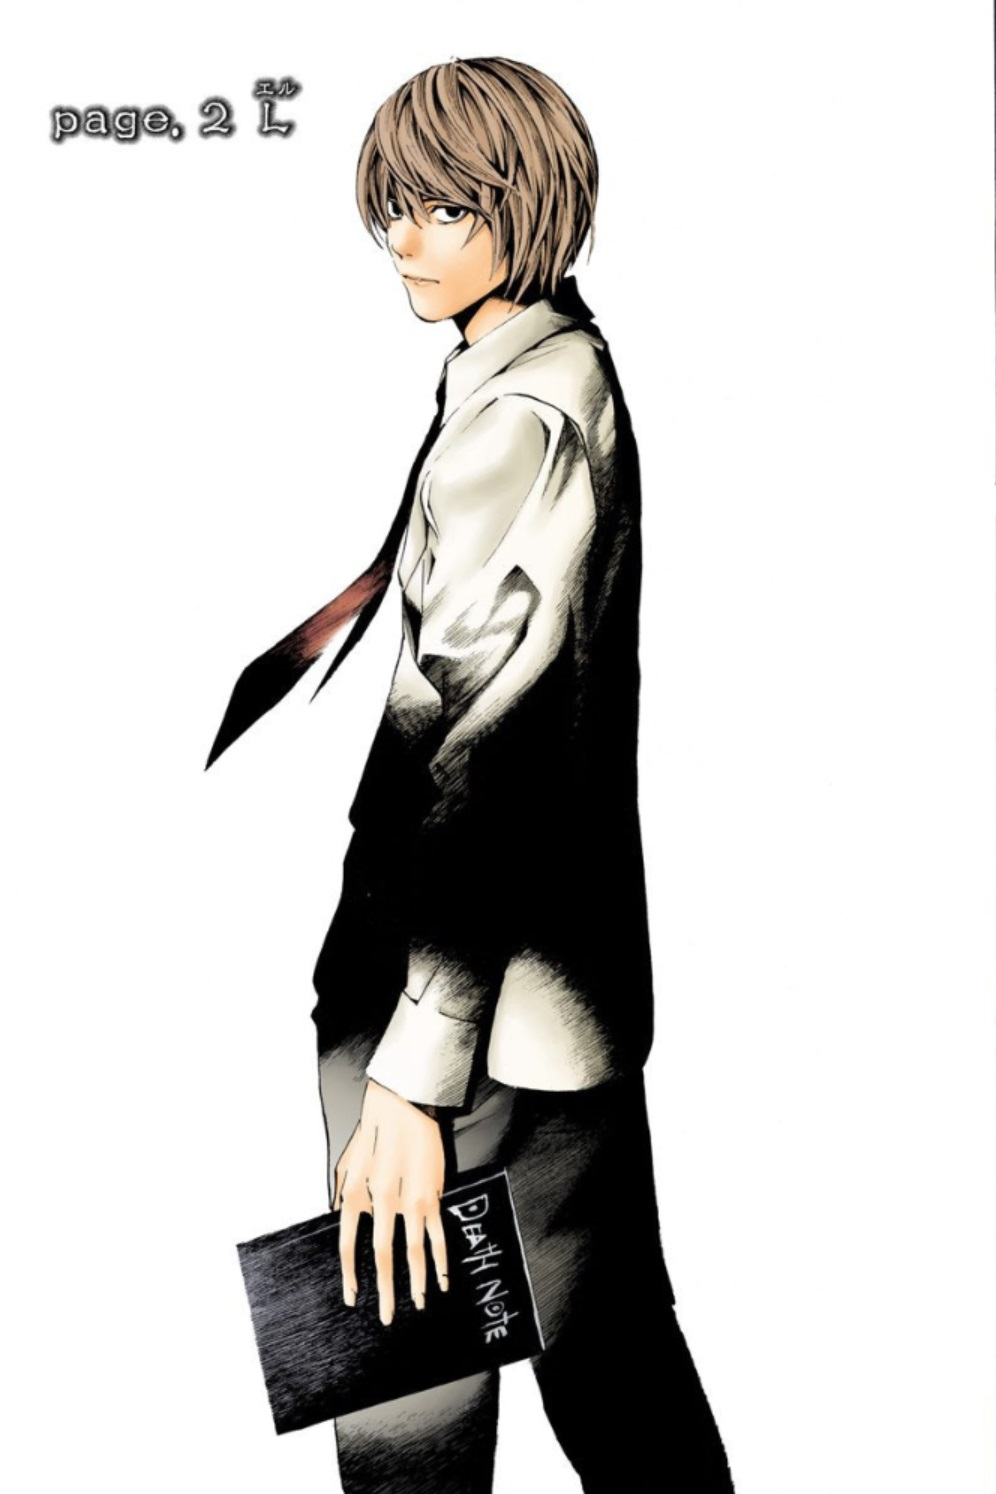 http://images.wikia.com/deathnote/images/3/34/L.jpg